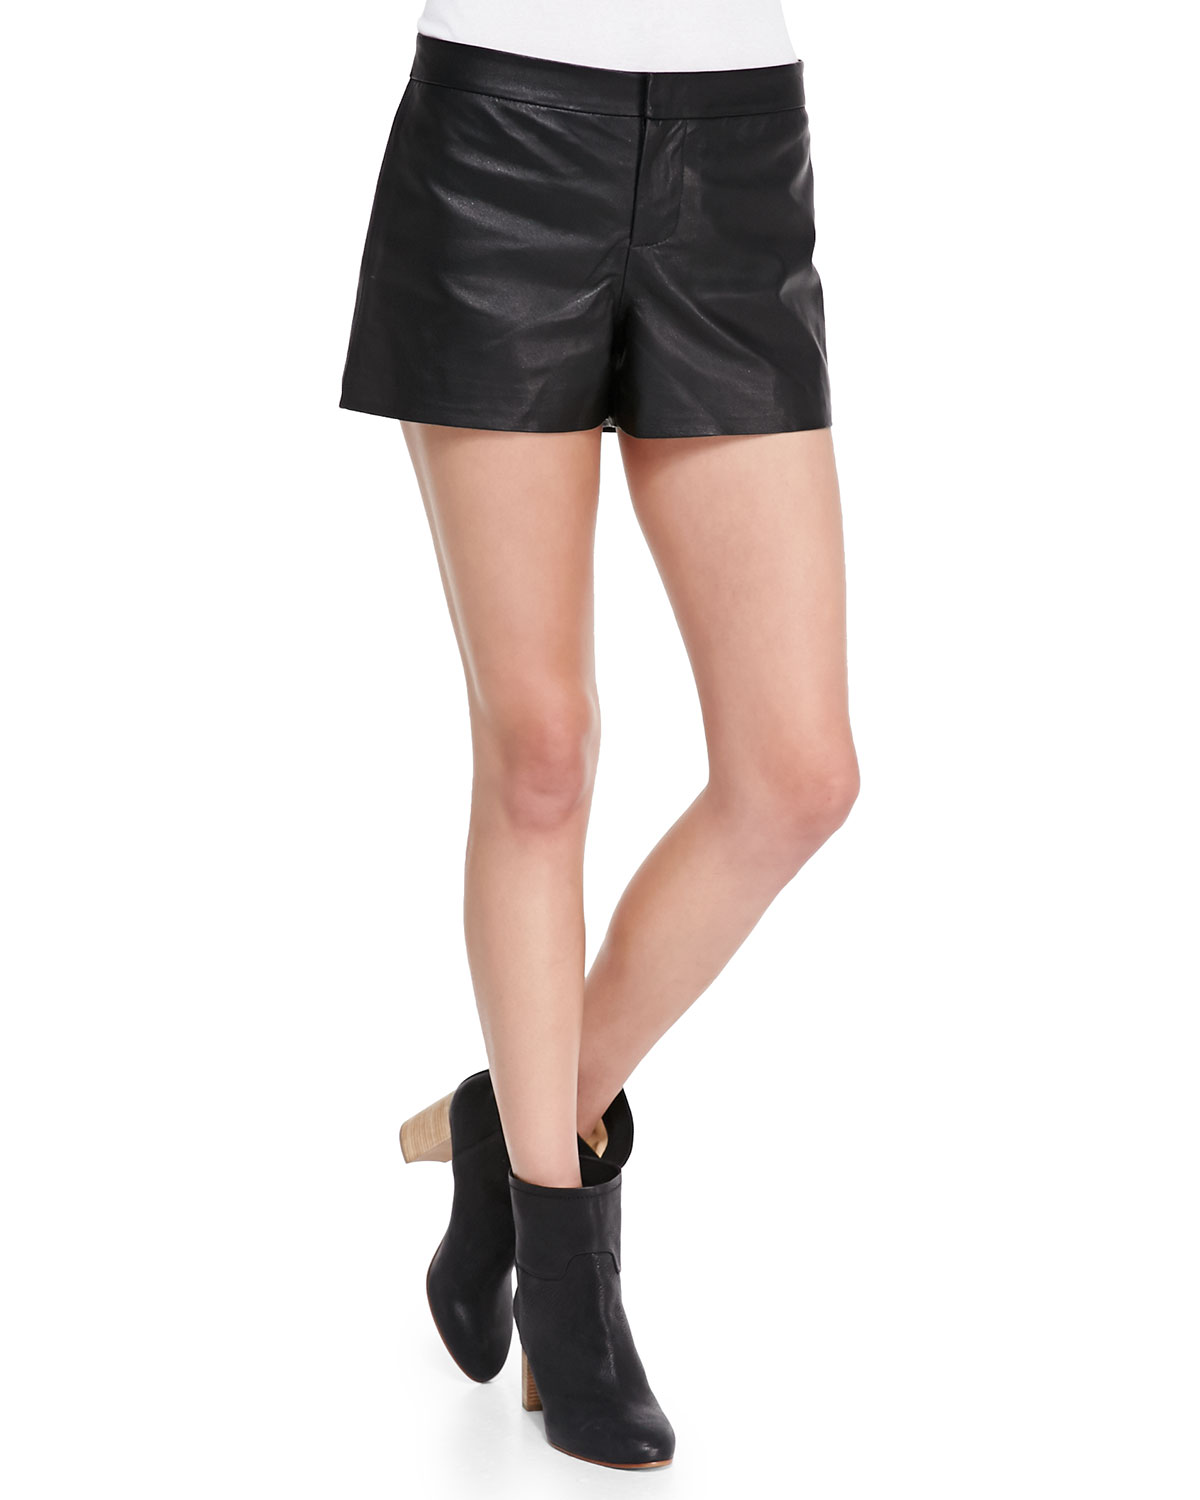 Cusp by Neiman Marcus Thekla Leather Shorts, Black